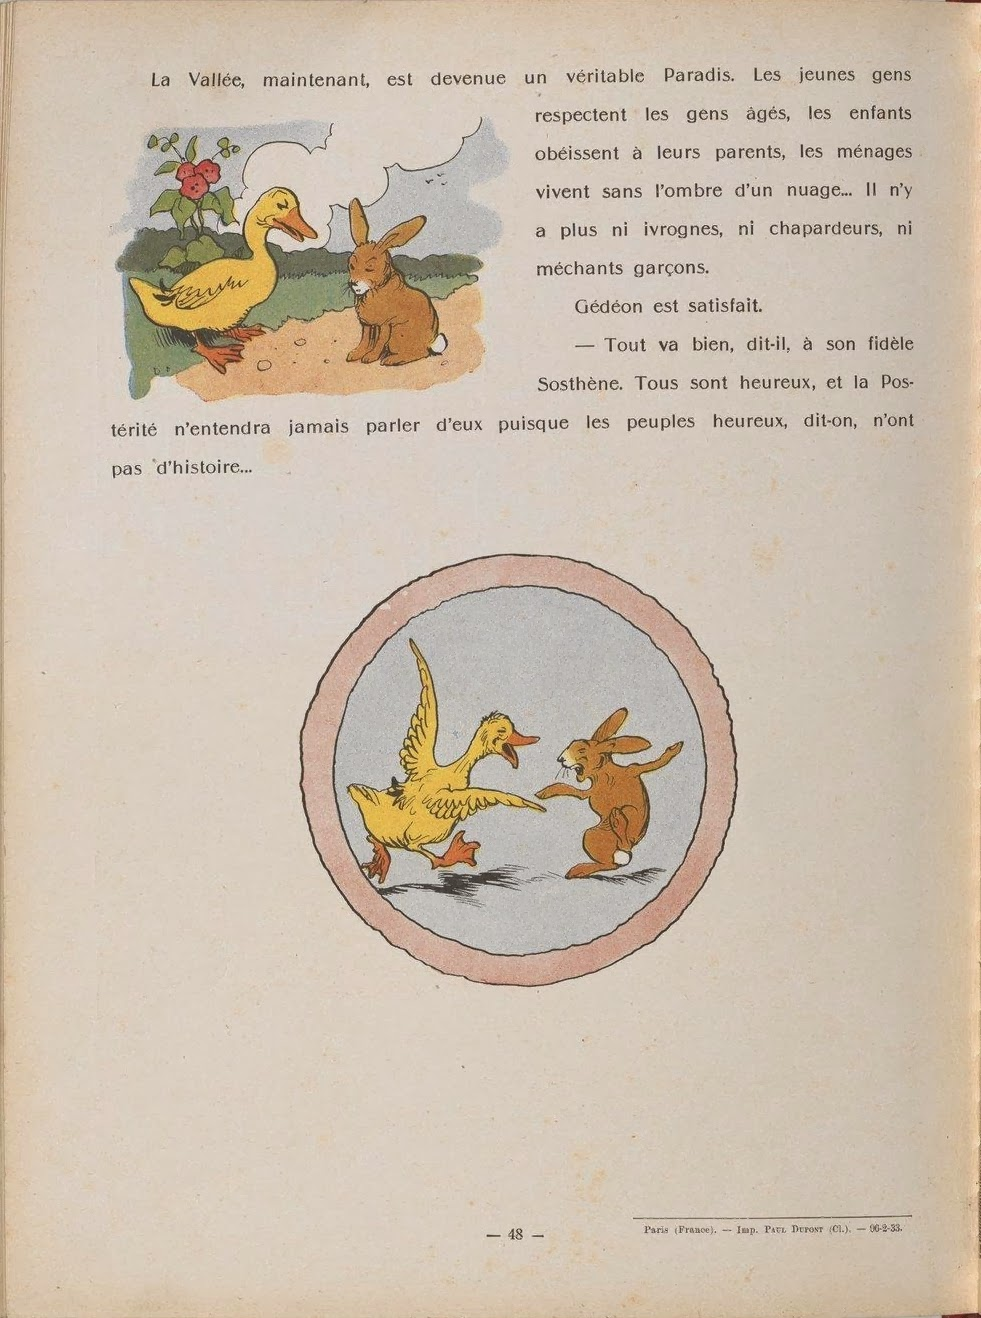 cartoon duck and rabbit illustrations from children's book